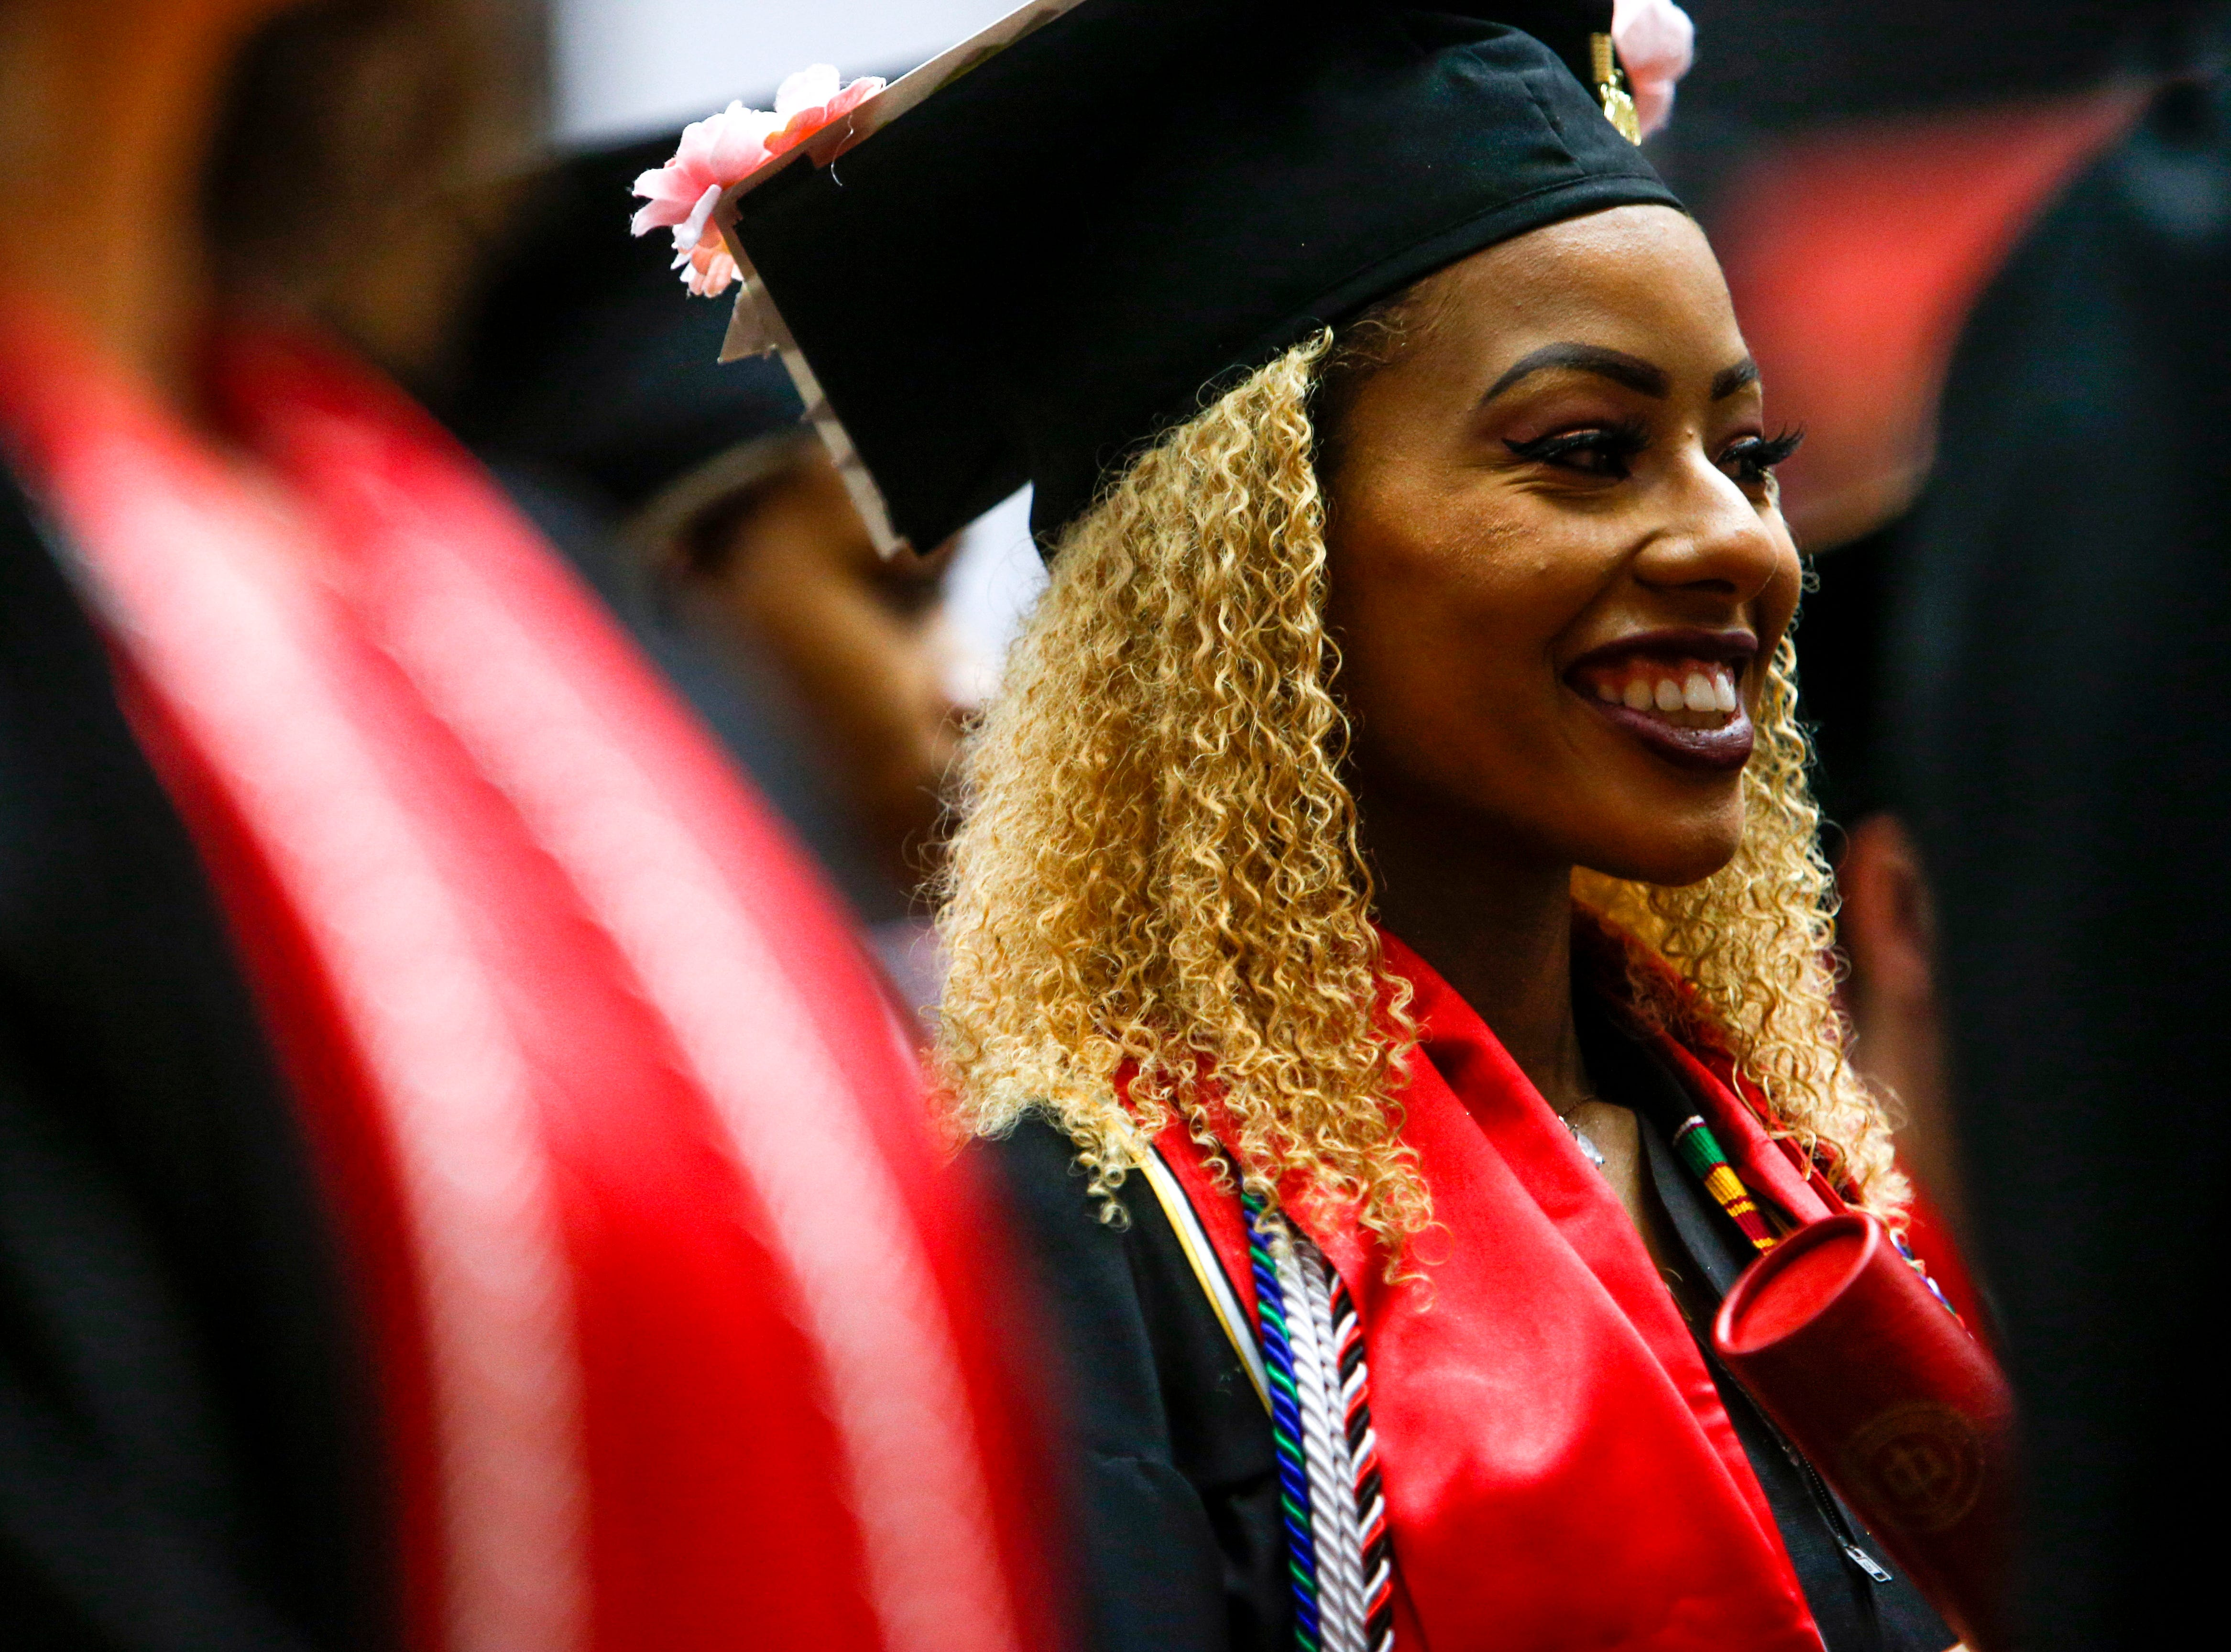 Students smile in the final moments before being dismissed to friends and family at the Austin Peay spring commencement ceremony 2019 for College of Business and College of STEM at Winfield Dunn Center in Clarksville, Tenn., on Friday, May 3, 2019.